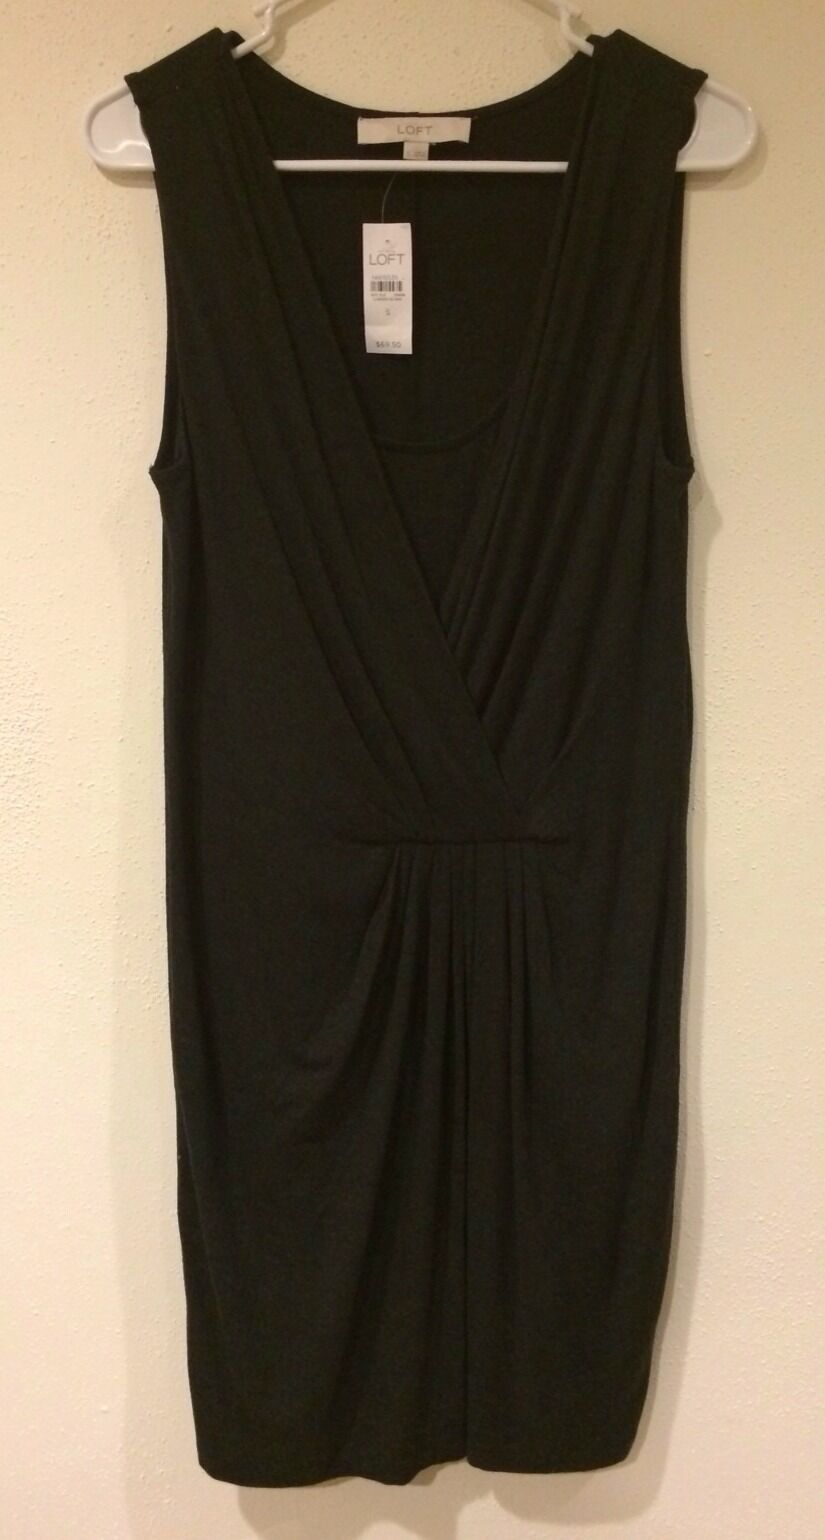 NWT Ann Taylor loft  dark grey dress size M